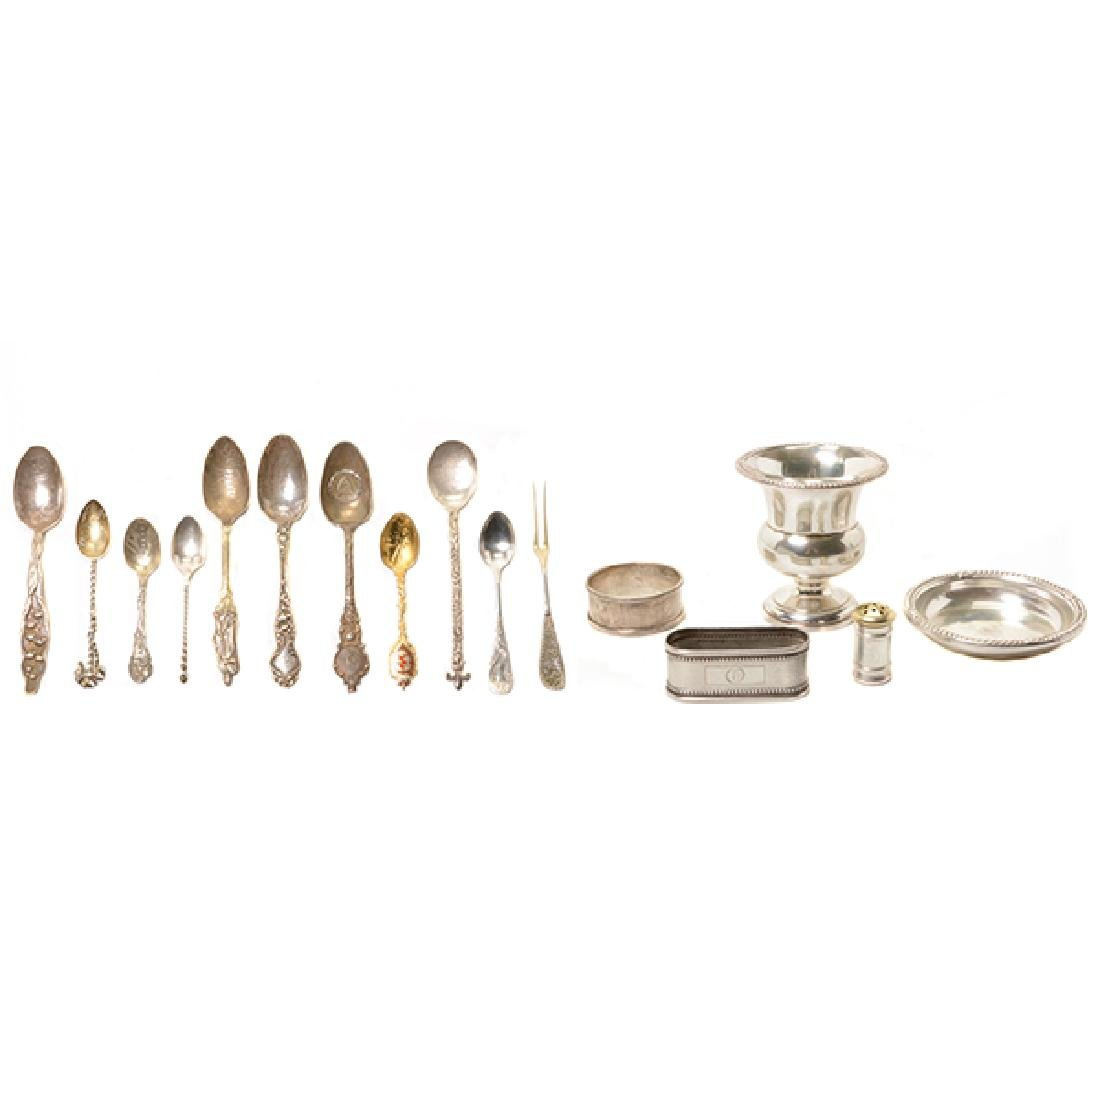 Collection of Sterling Flatware and Hollowware